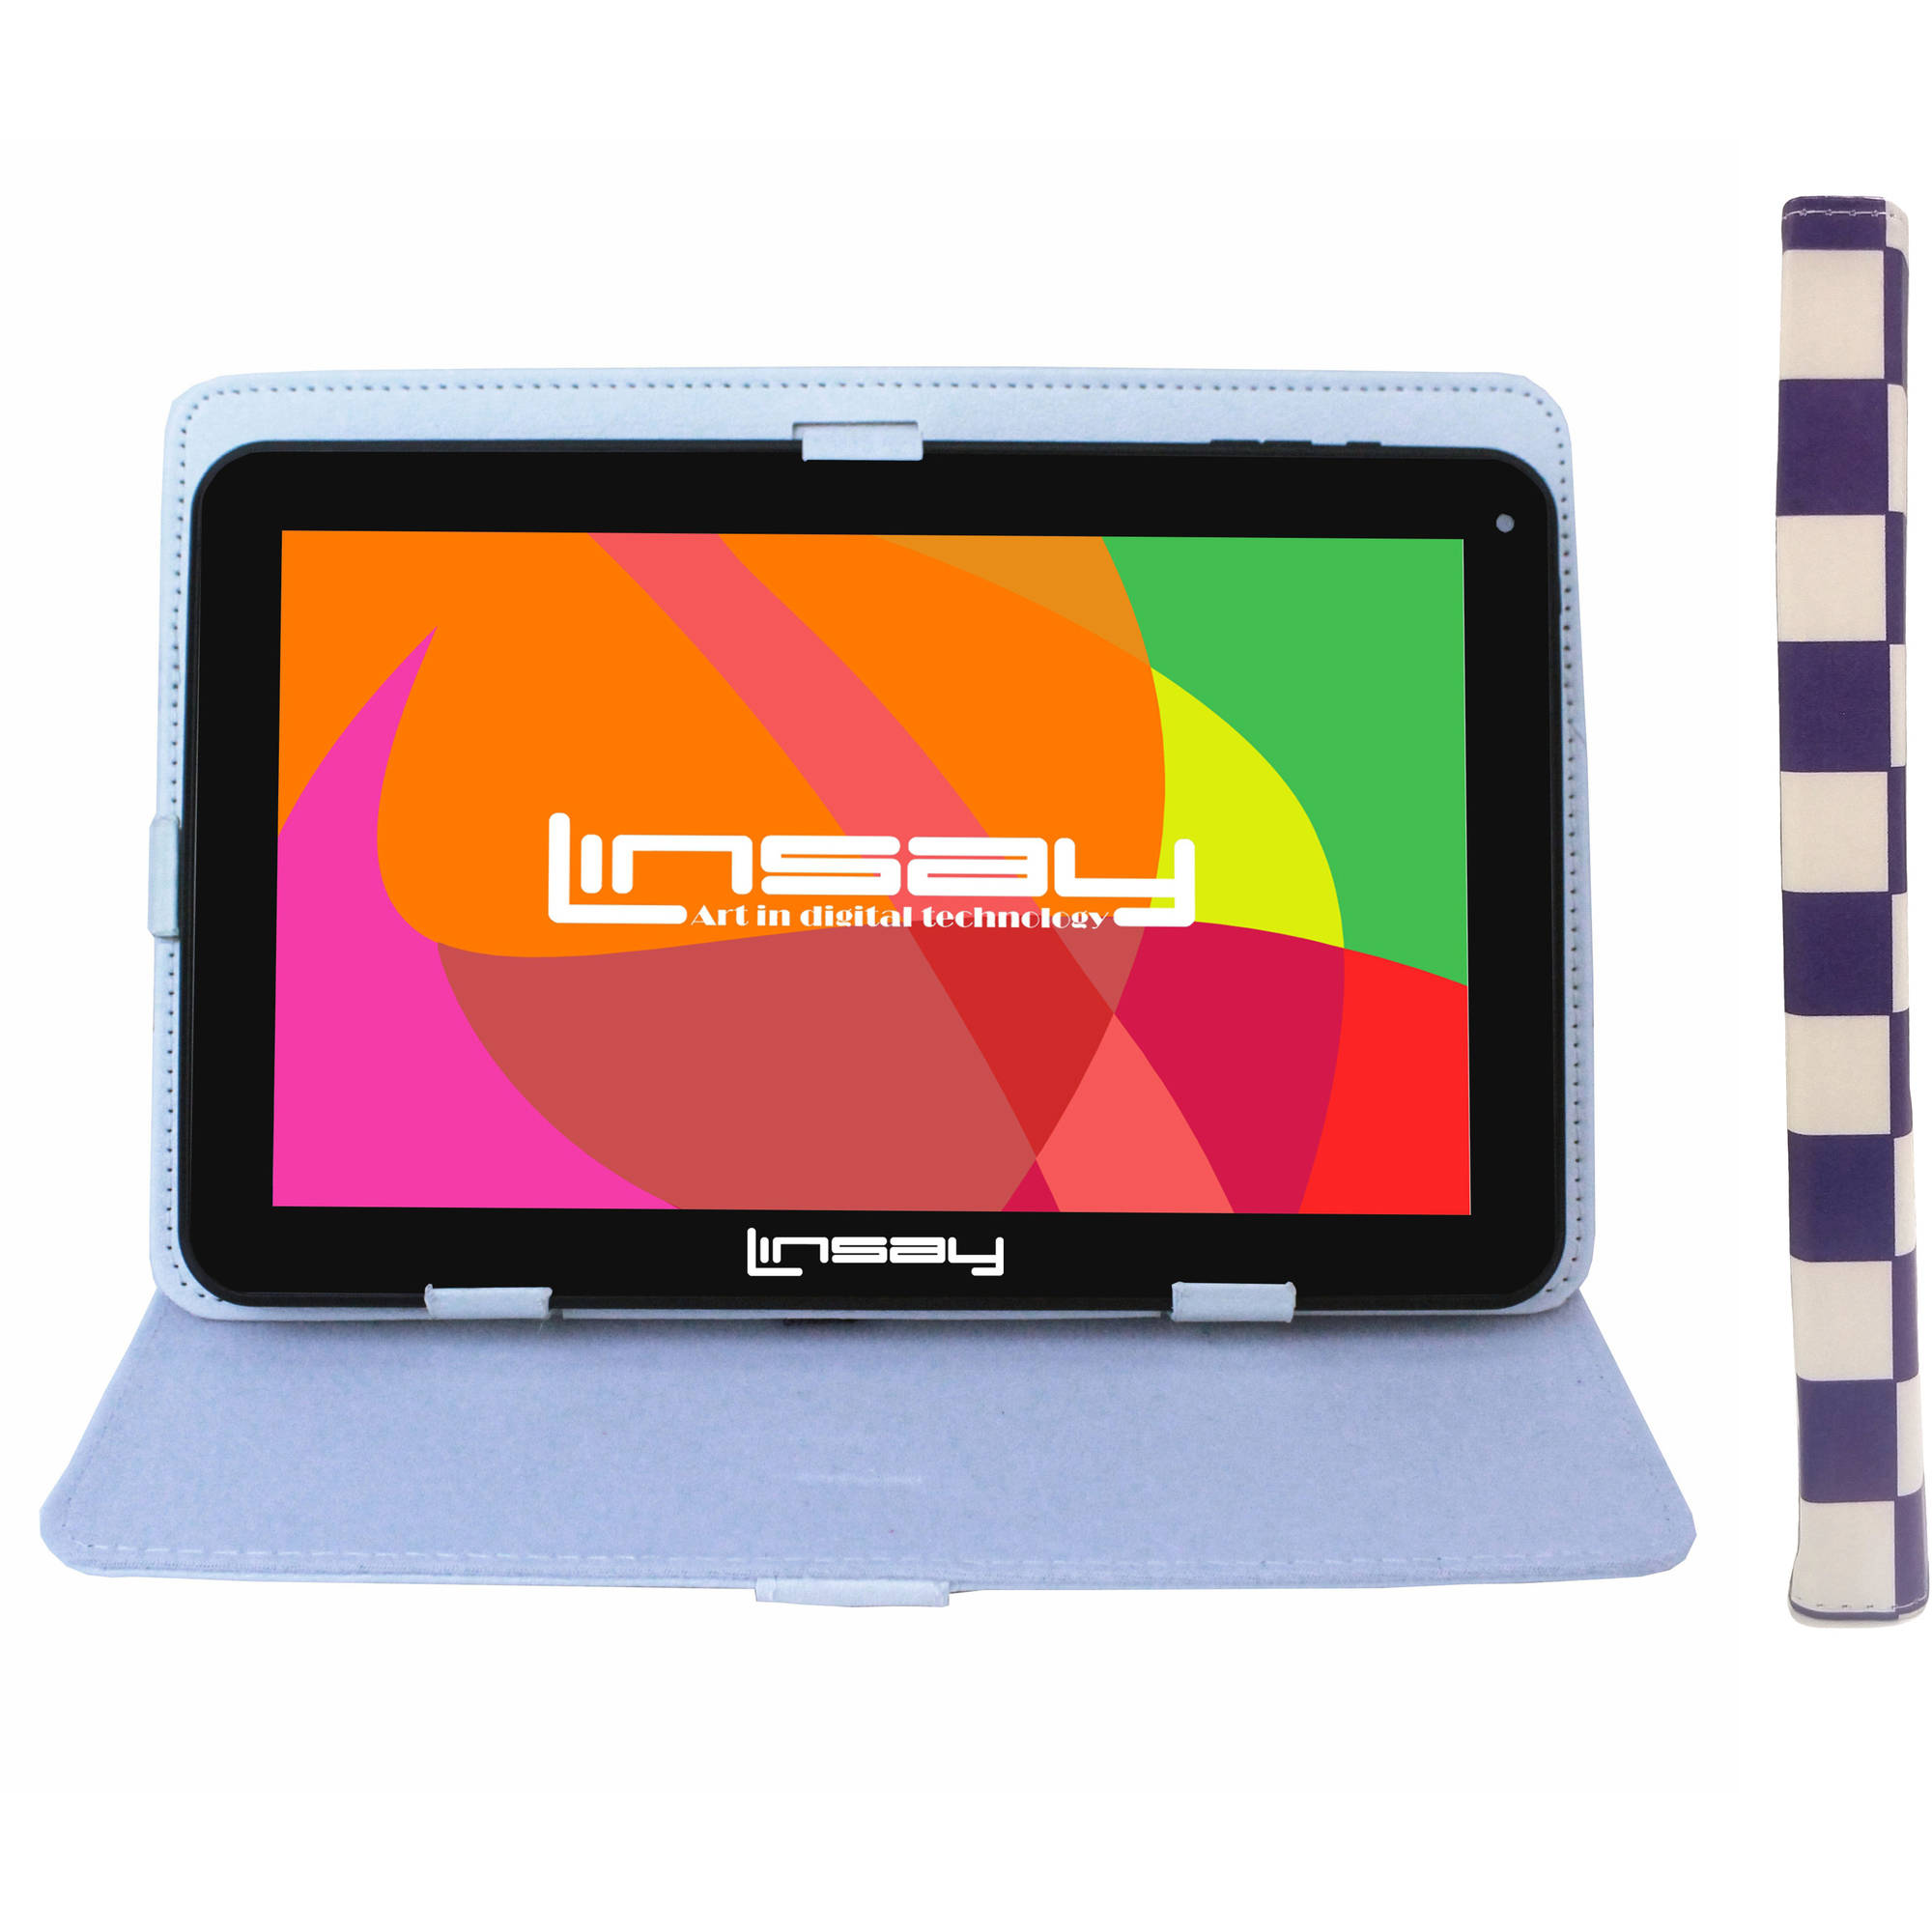 "LINSAY 10.1"" Touchscreen Tablet PC Featuring Android 4.4 (KitKat) Operating System Bundle with Purple Square Case"